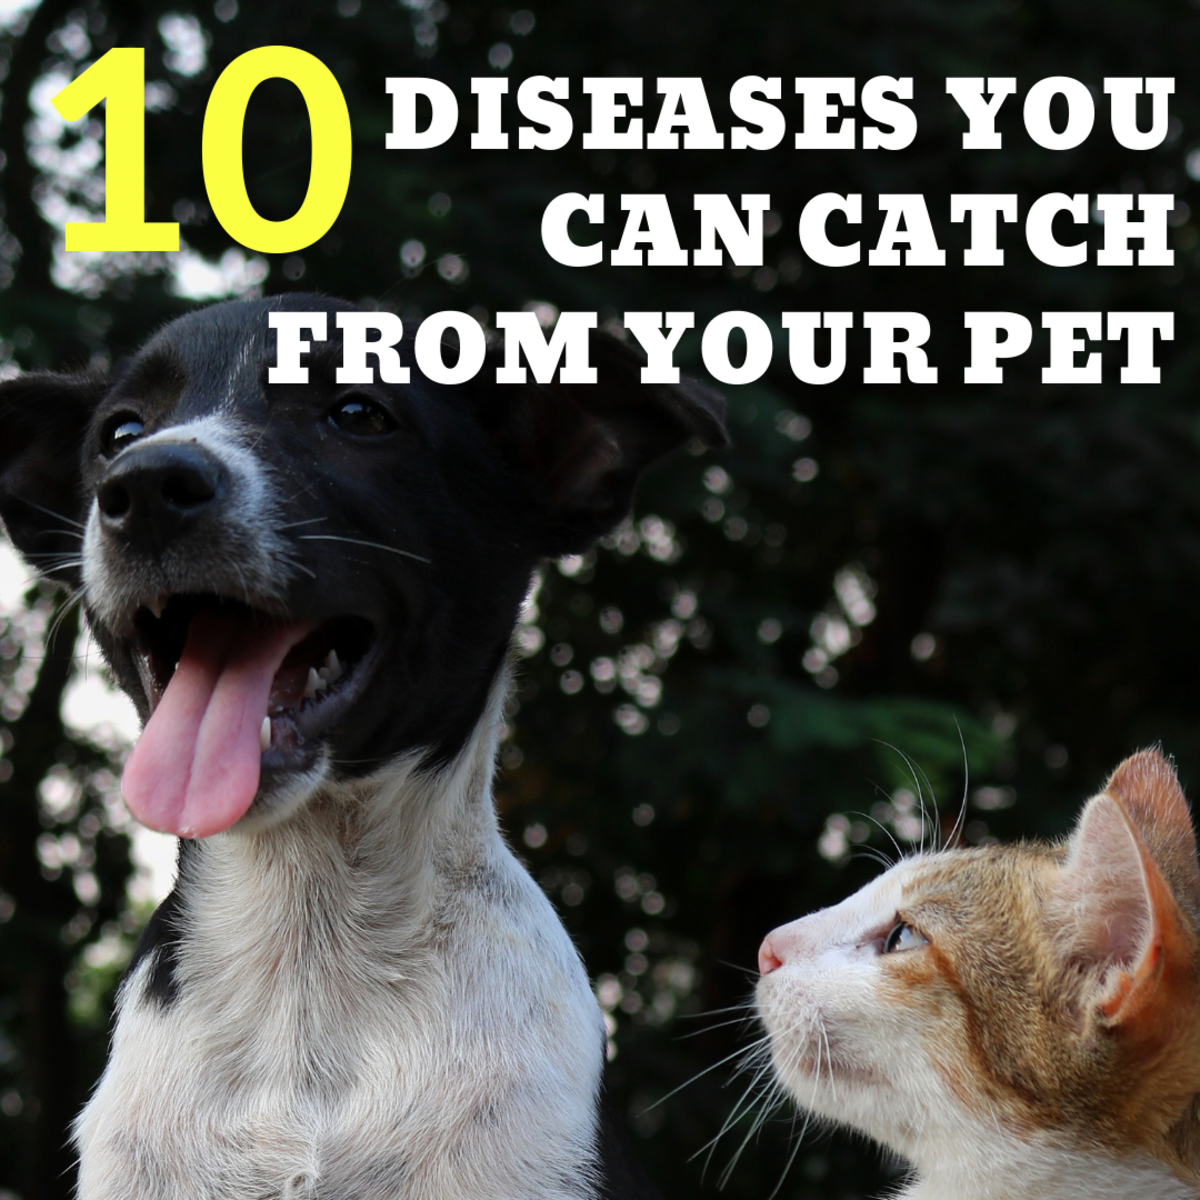 10 Diseases You Can Acquire From Your Pet